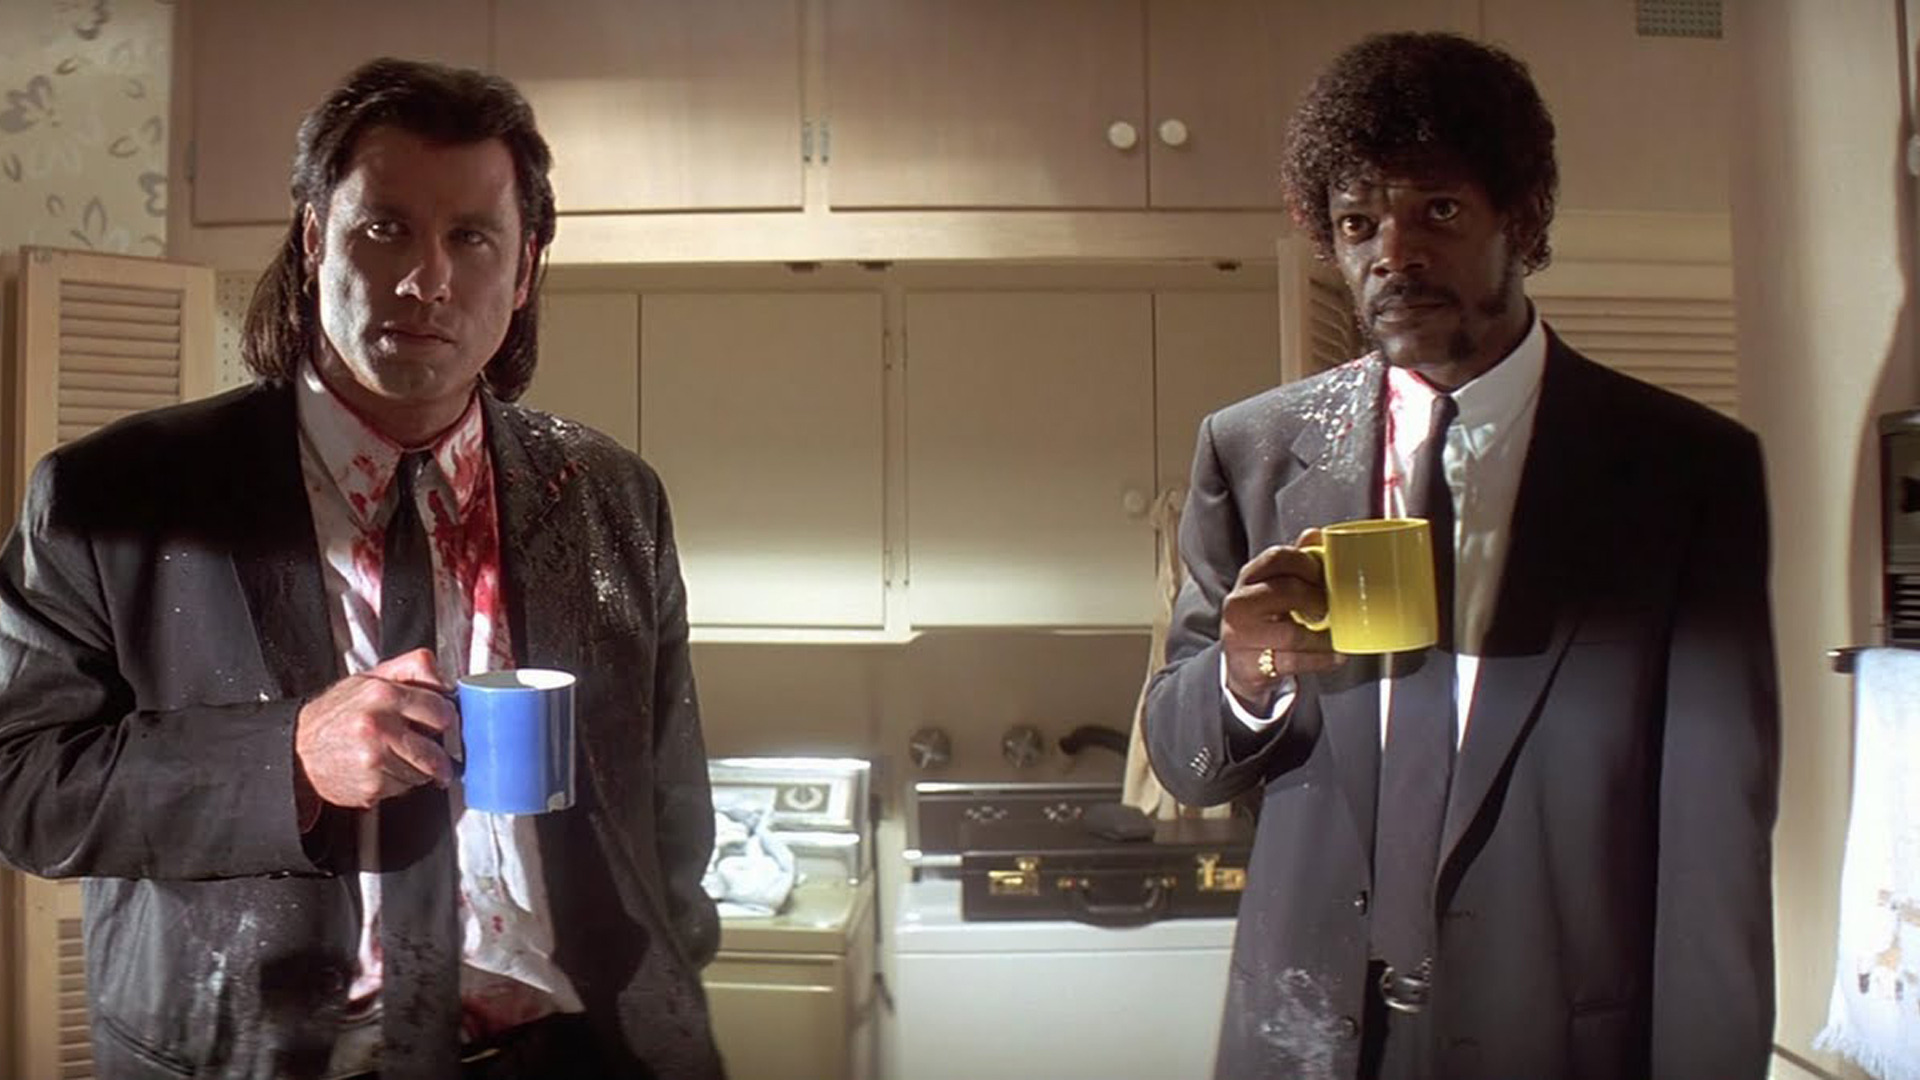 John Travolta and Samuel L Jackson rose to fame as   Vincent Vega and   Jules Winnfield, well scripted urban thugs in Tarantino's Pulp Fiction.